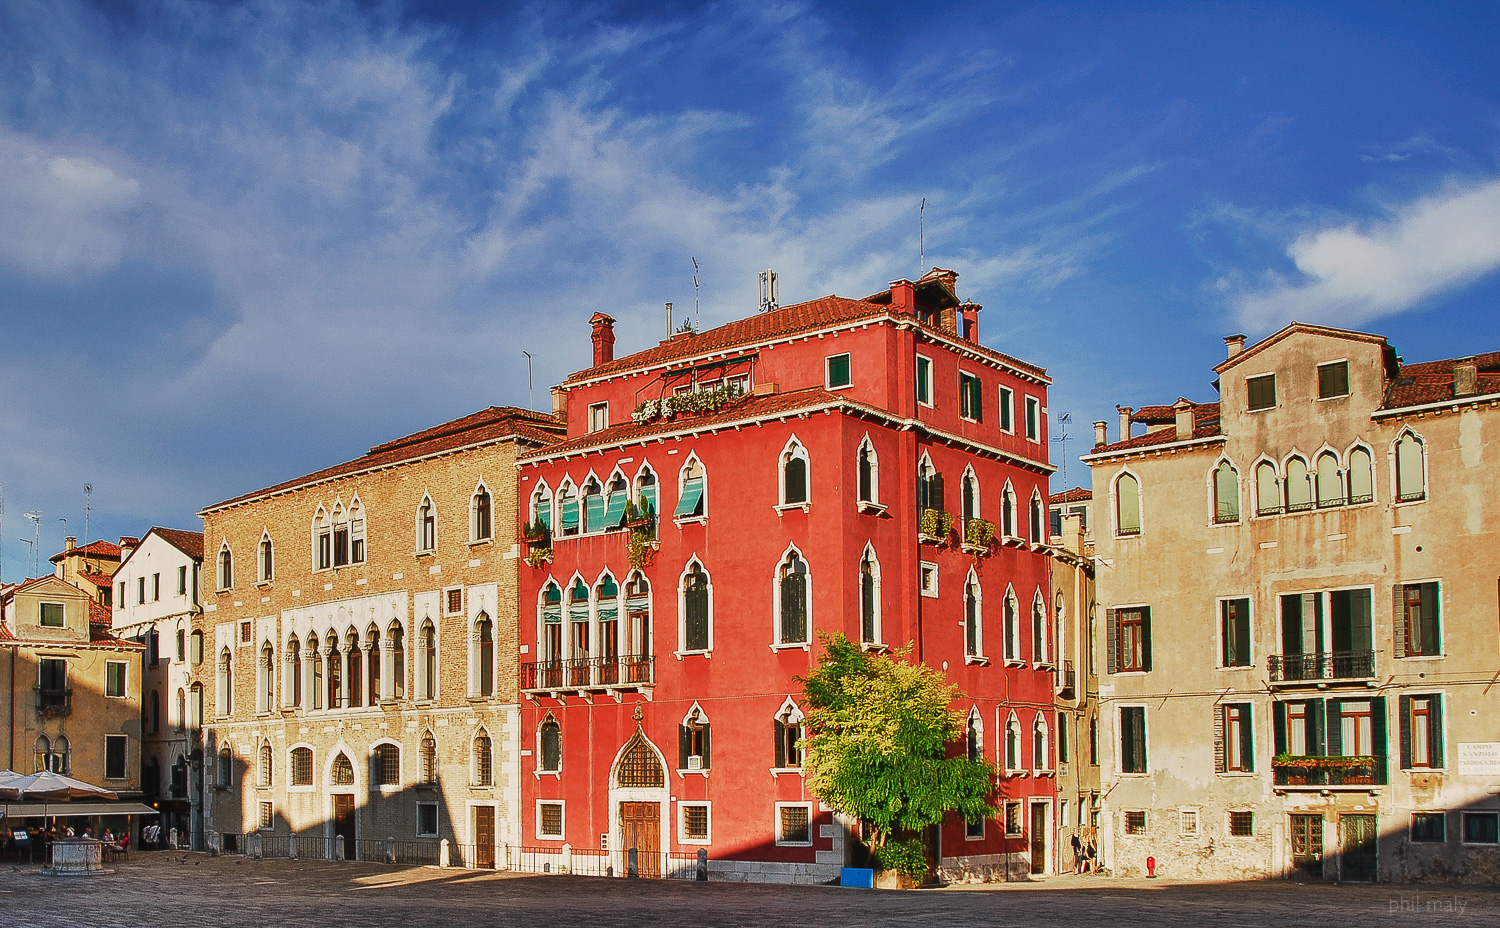 A Venetian palace with red facade